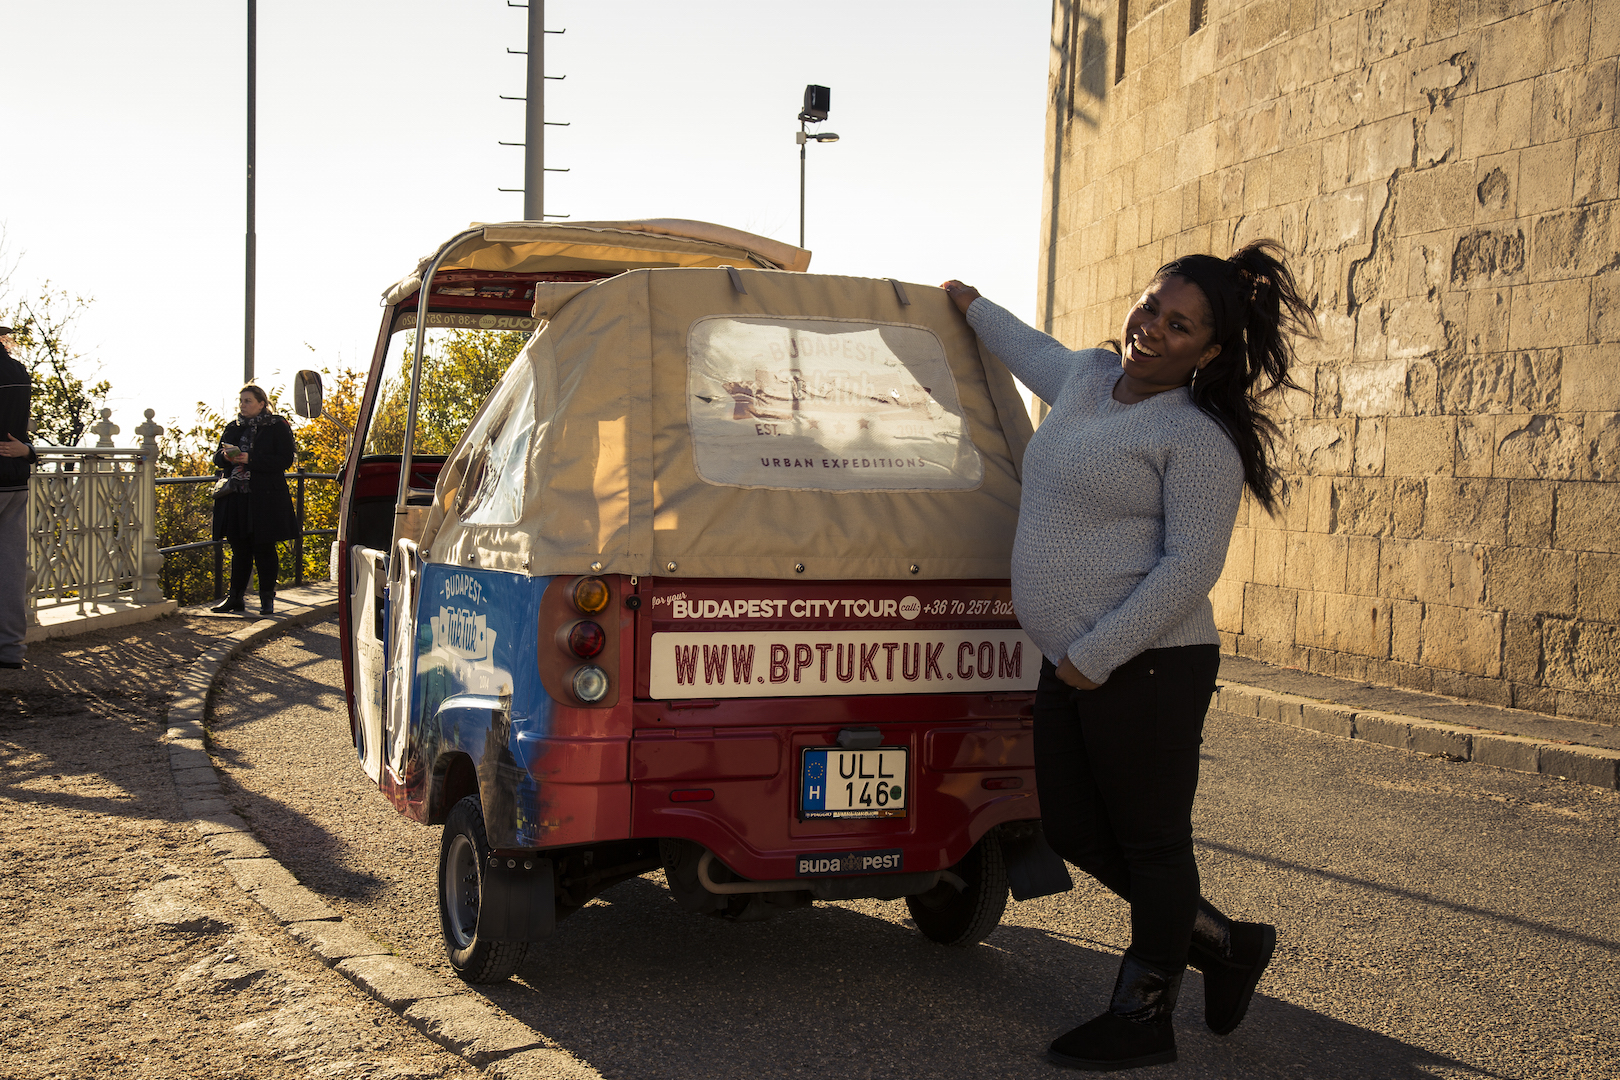 5 Months pregnant and I loved the Budapest Tuk Tuk. You should try it!